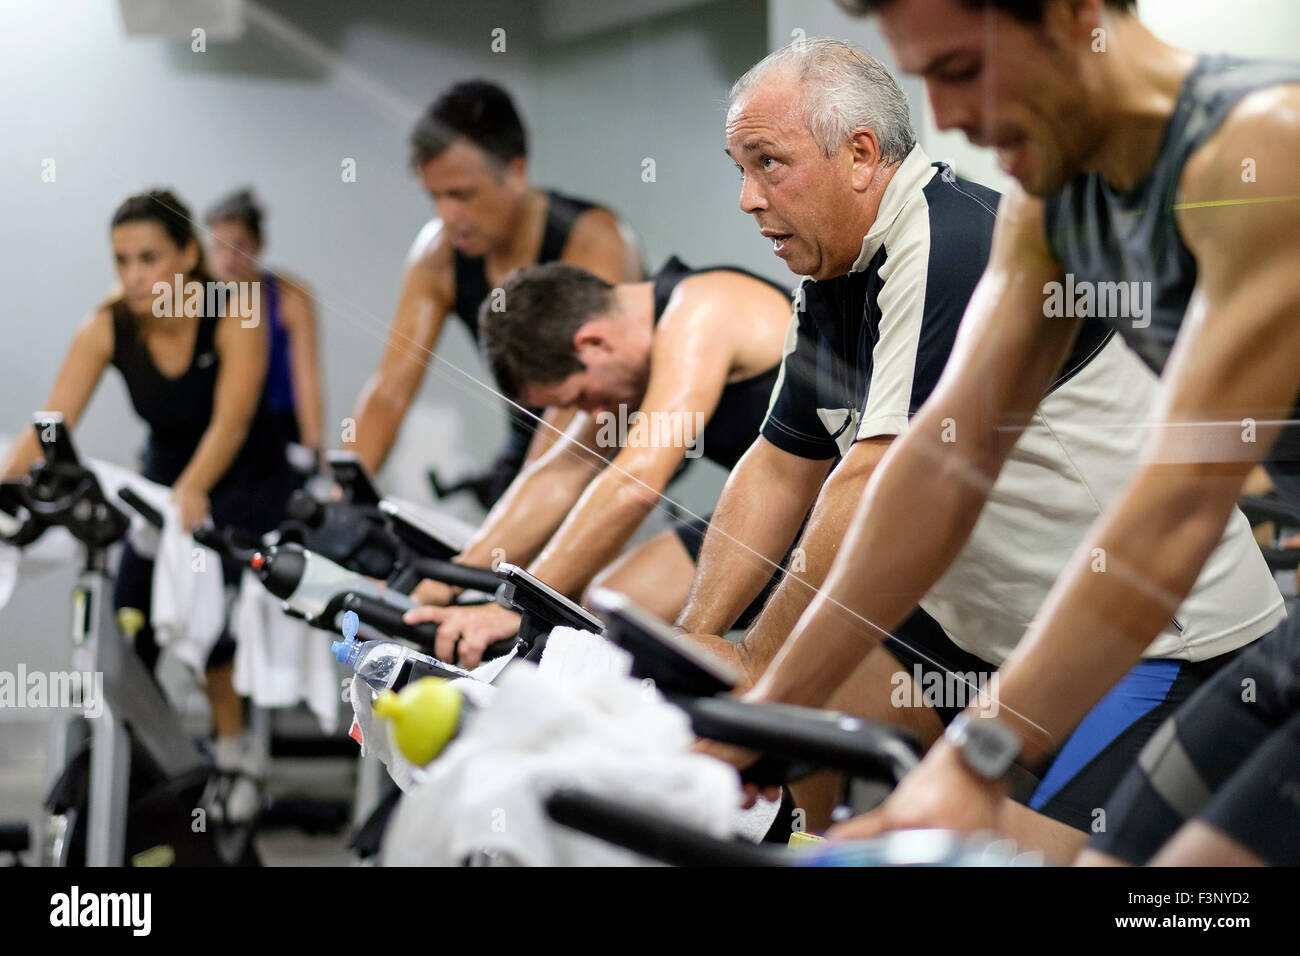 Side view of people riding stationary bicycles during a spinning class at the gym - Stock Image